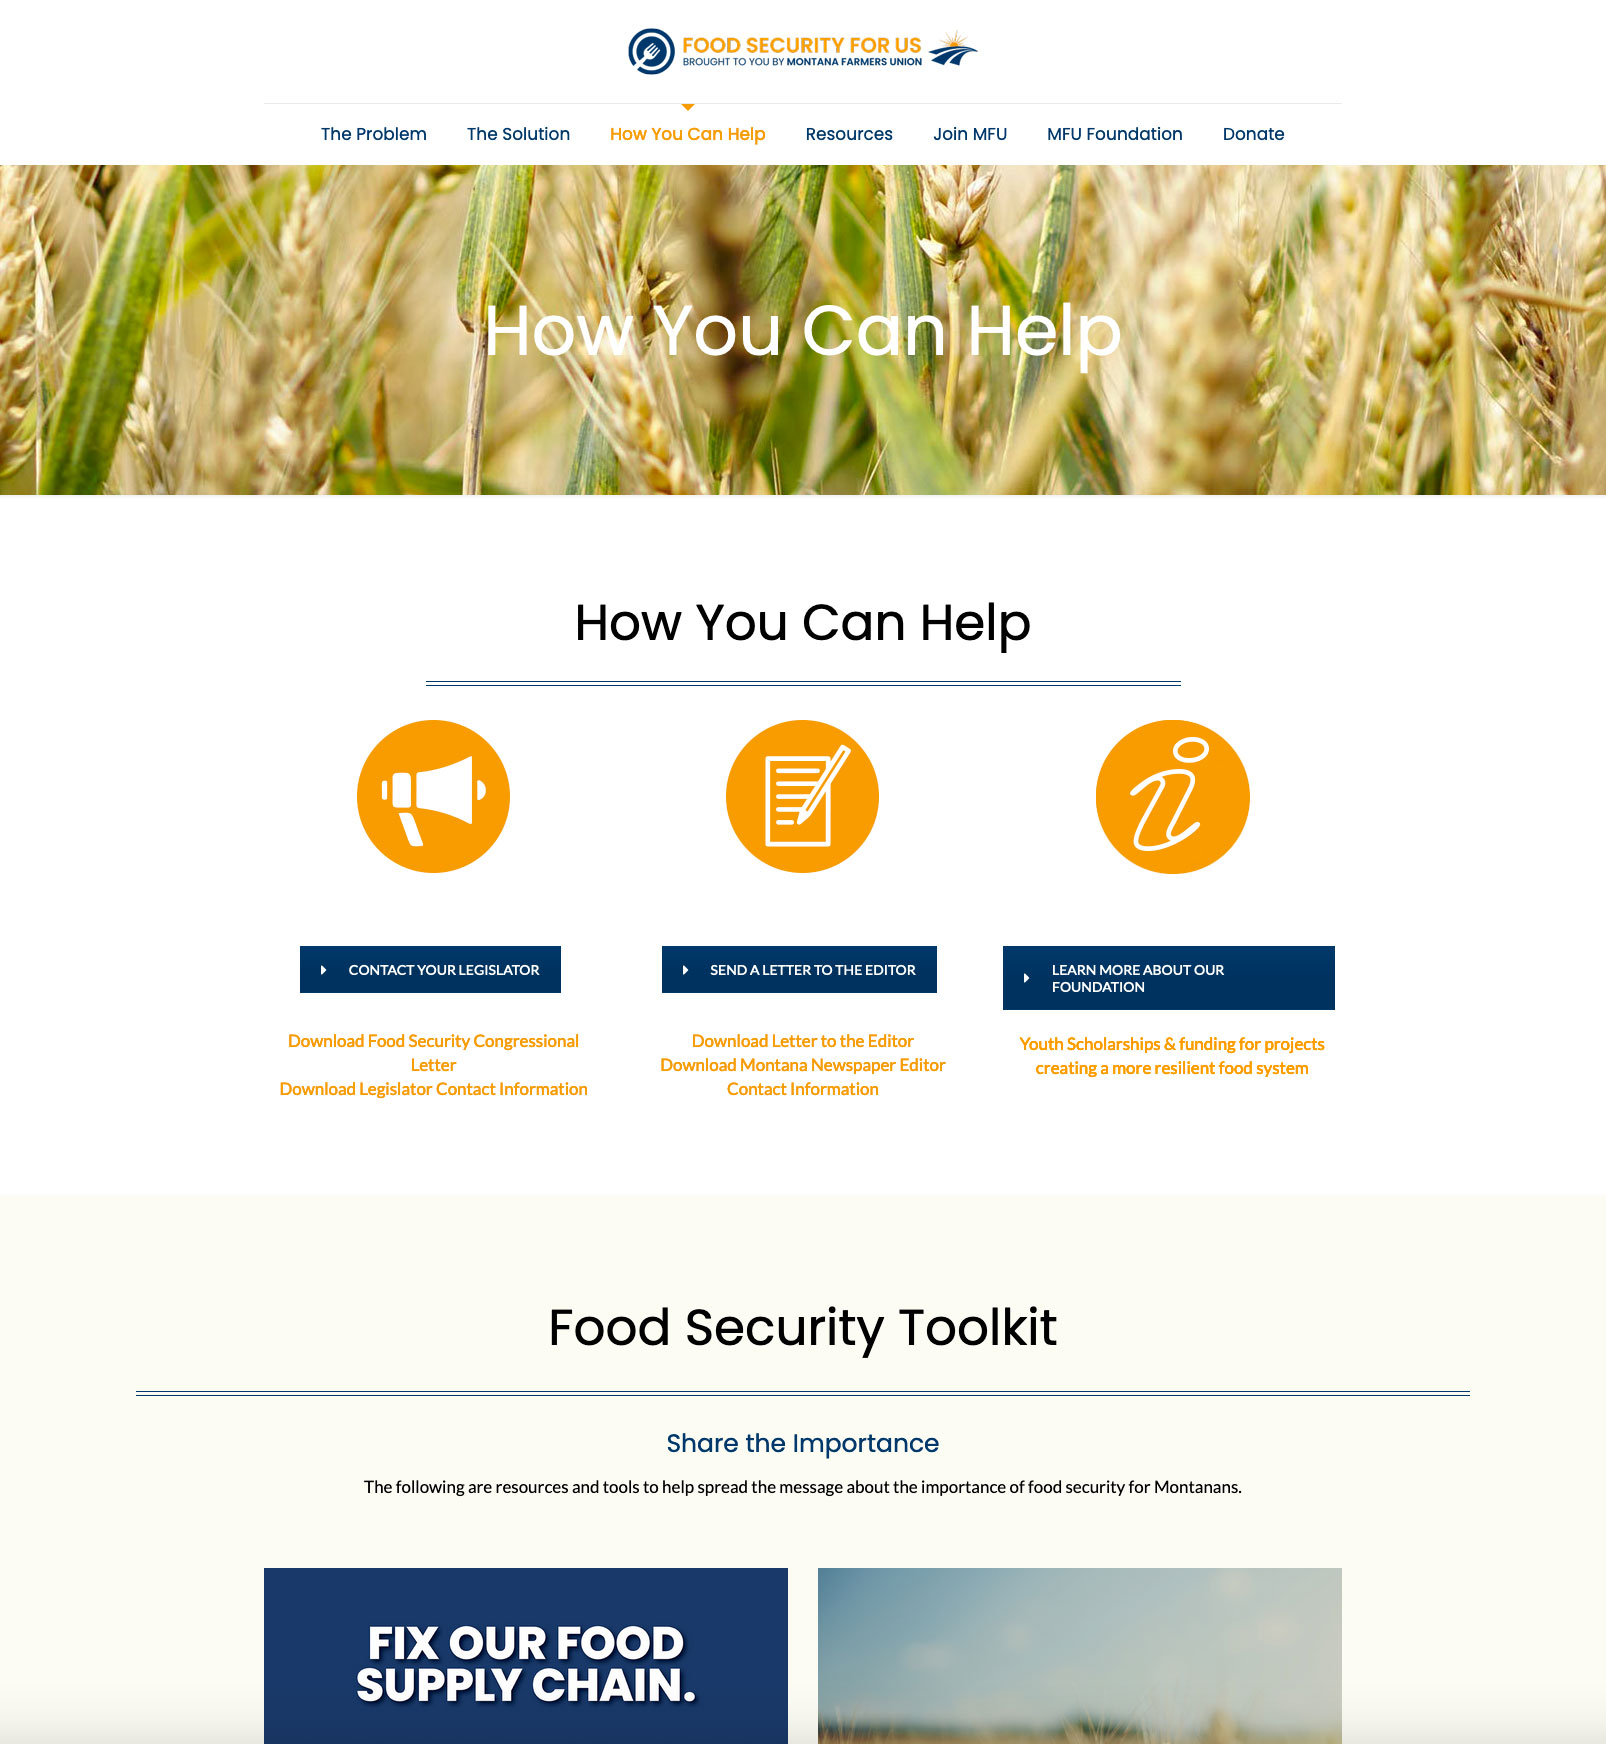 MFU Food Security for Us how you can help web page